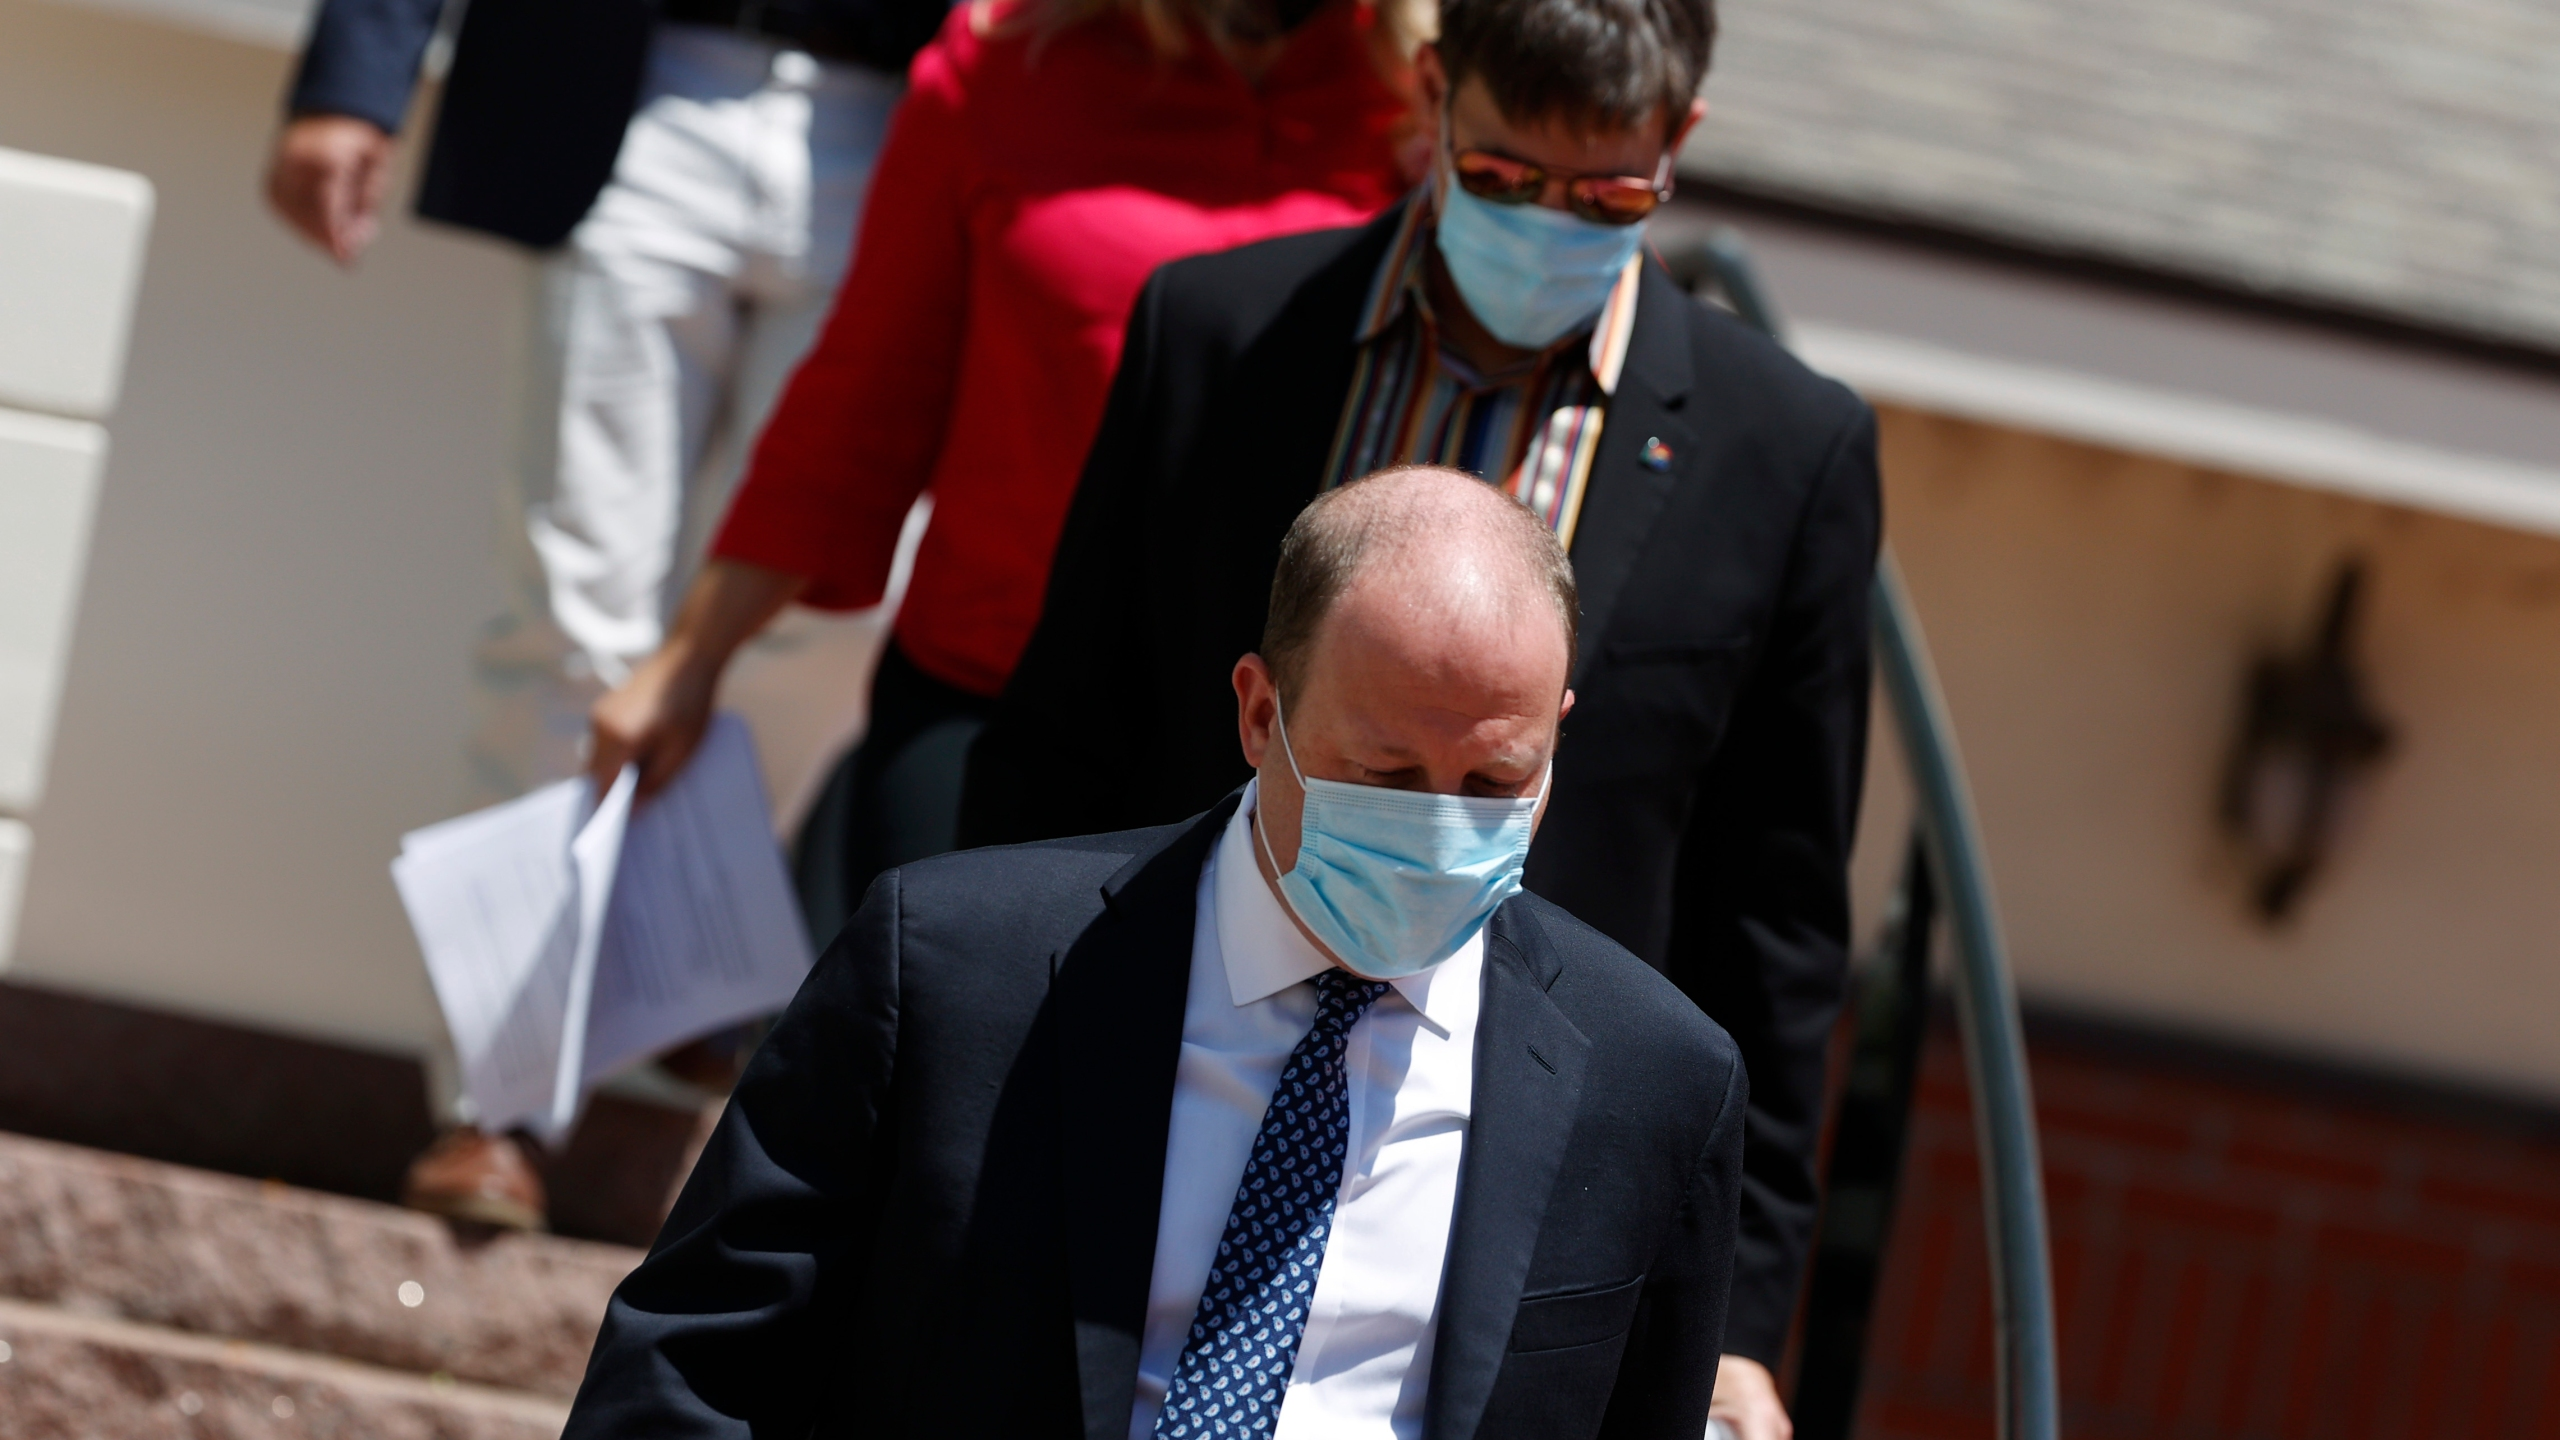 Colorado Gov. Jared Polis, front, navigates a set of stairs as he heads into a news conference with his partner, Marlon Reis, about the state's efforts to cut the spread of the new coronavirus Tuesday, June 30, 2020, in Denver. (AP Photo/David Zalubowski)